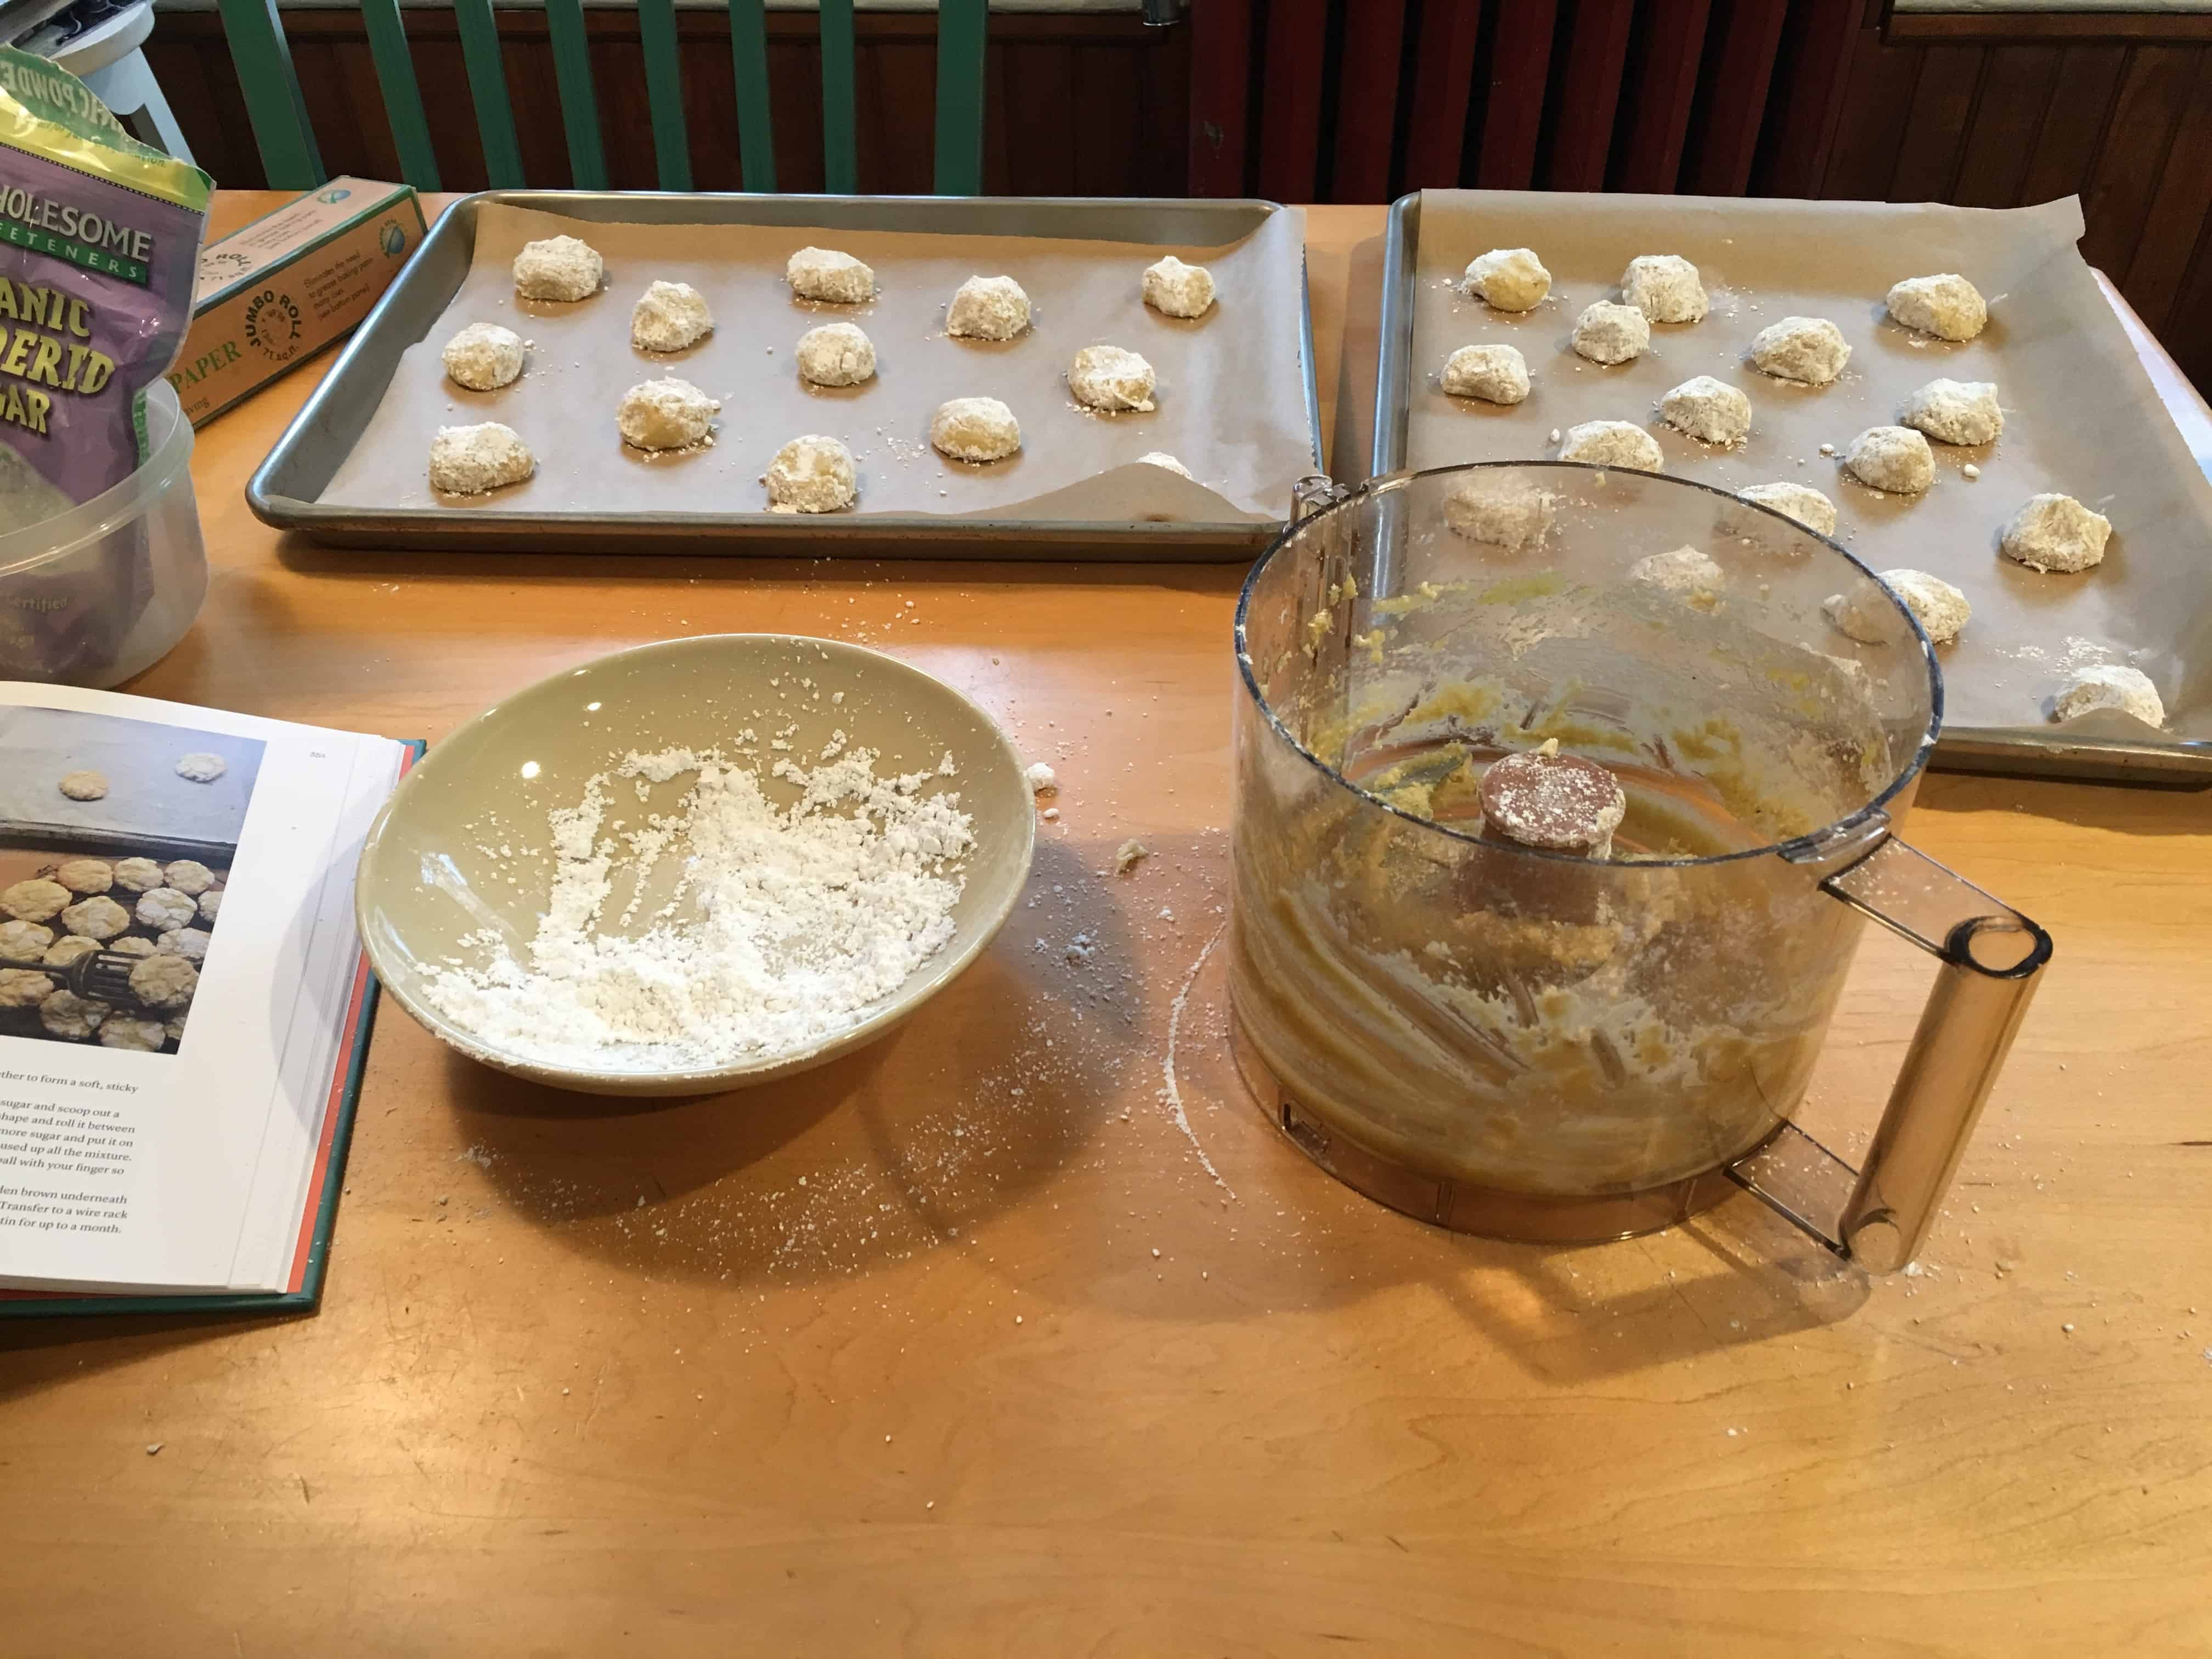 Mounds of almond cookies coated in confectioners' sugar.